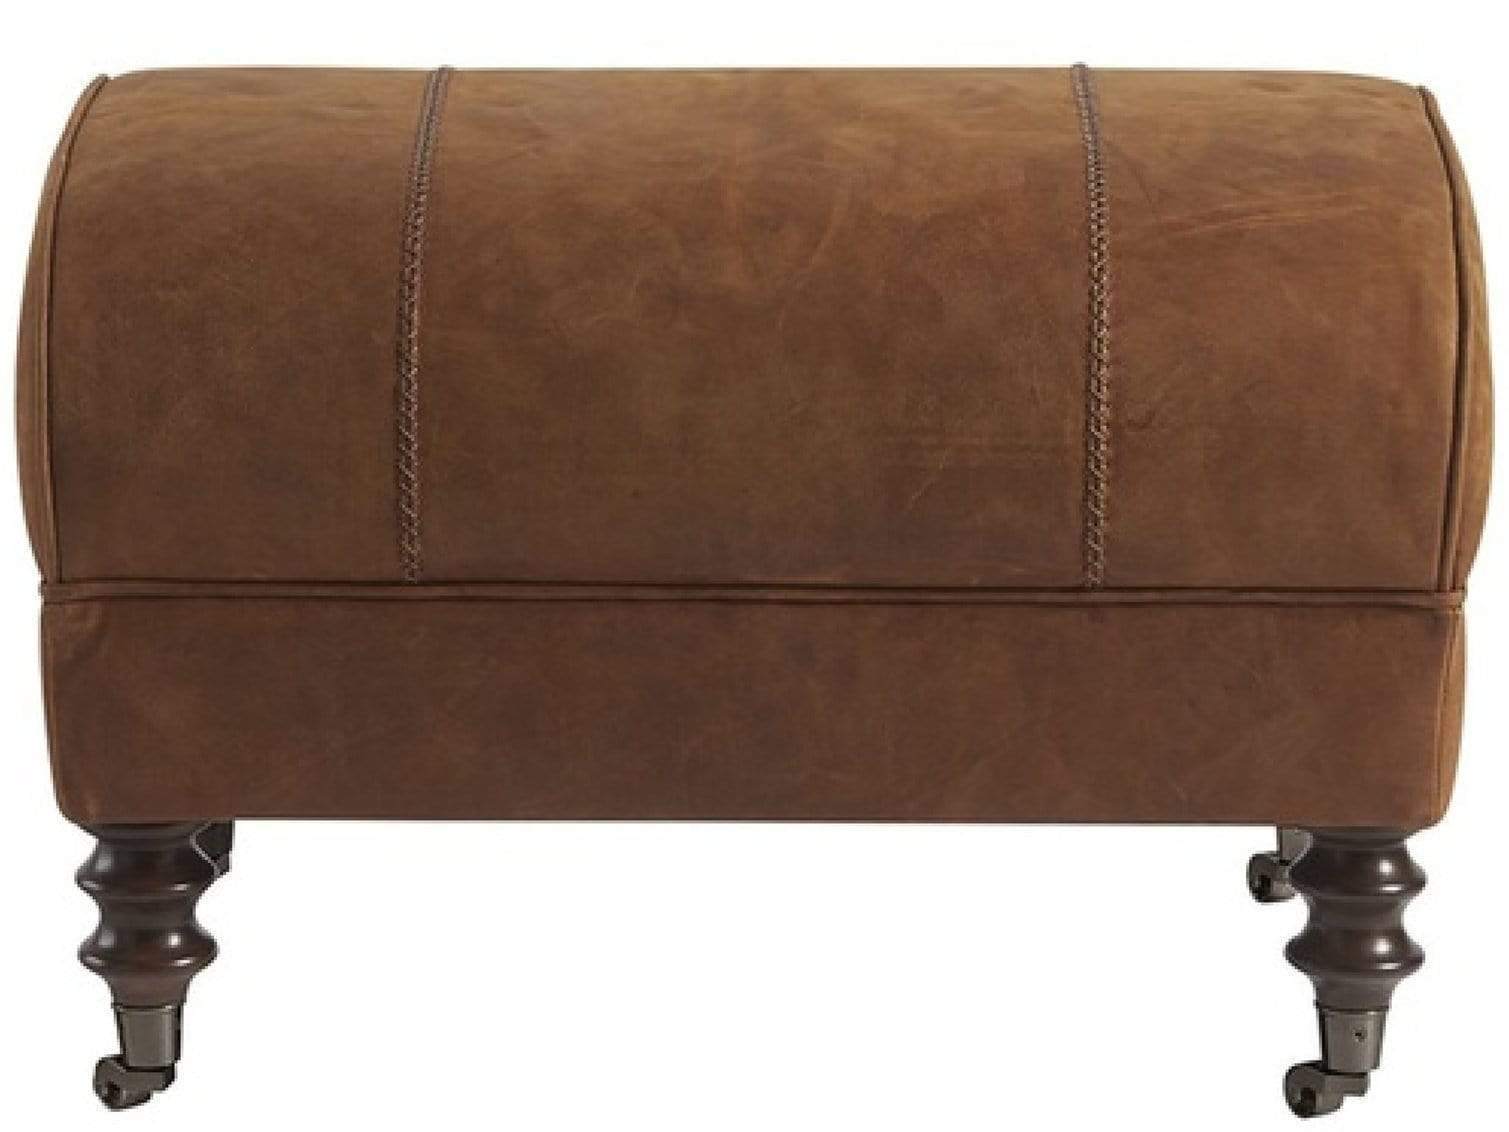 Alchemy Living Alchemy Living Leather Bryan Ottoman - Brown 682544-706